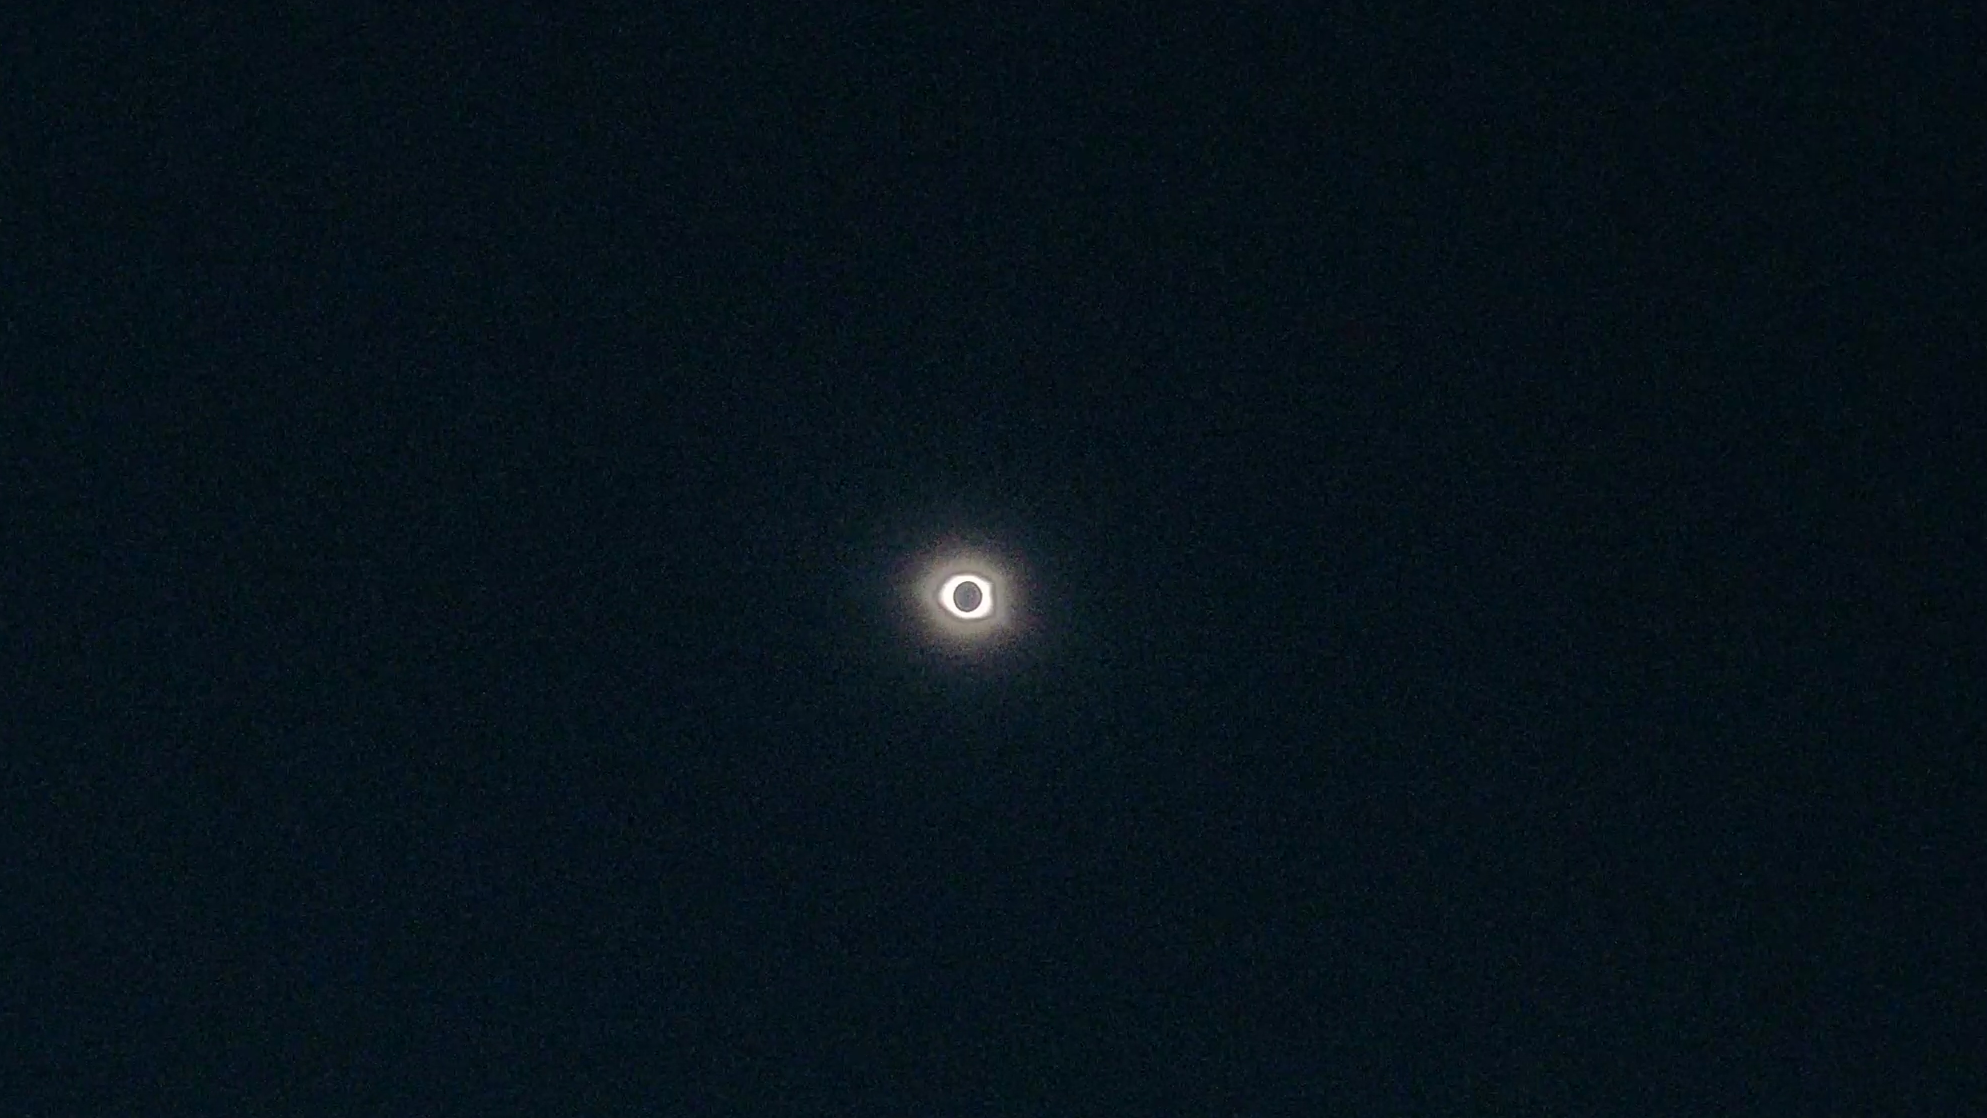 My solar eclipse 2017 experience